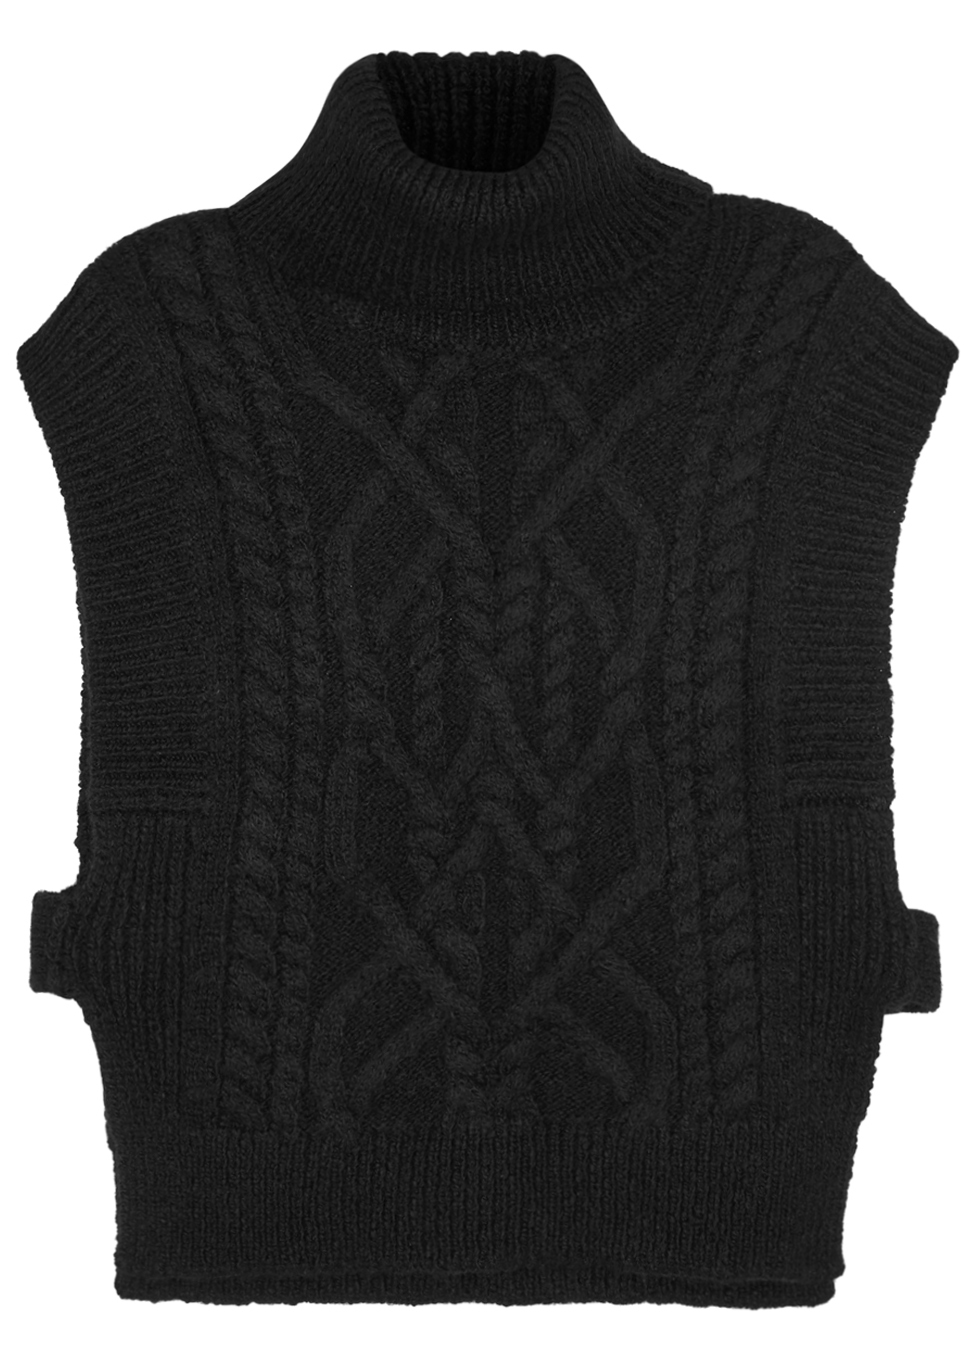 Grant Roll Neck Alpaca Blend Jumper Size - sleeve style: sleeveless; neckline: roll neck; style: standard; pattern: cable knit; predominant colour: black; occasions: casual, creative work; length: standard; fibres: wool - mix; fit: standard fit; sleeve length: sleeveless; texture group: knits/crochet; pattern type: knitted - other; pattern size: standard; season: a/w 2016; wardrobe: highlight